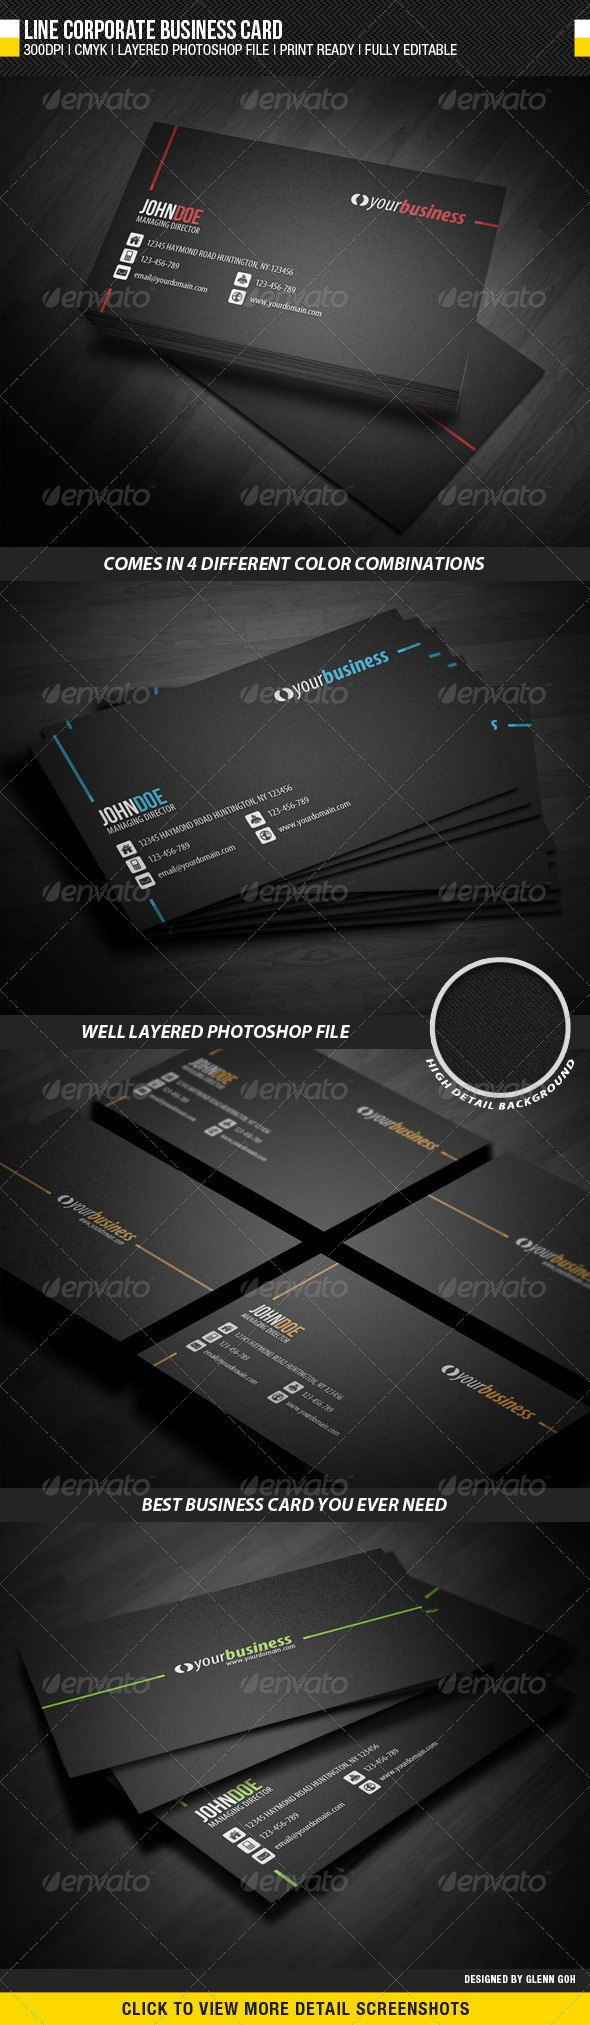 Business Card Templates Designs From Graphicriver In Business Card Maker Template 10 Business Card Template Design Simple Business Cards Business Card Maker